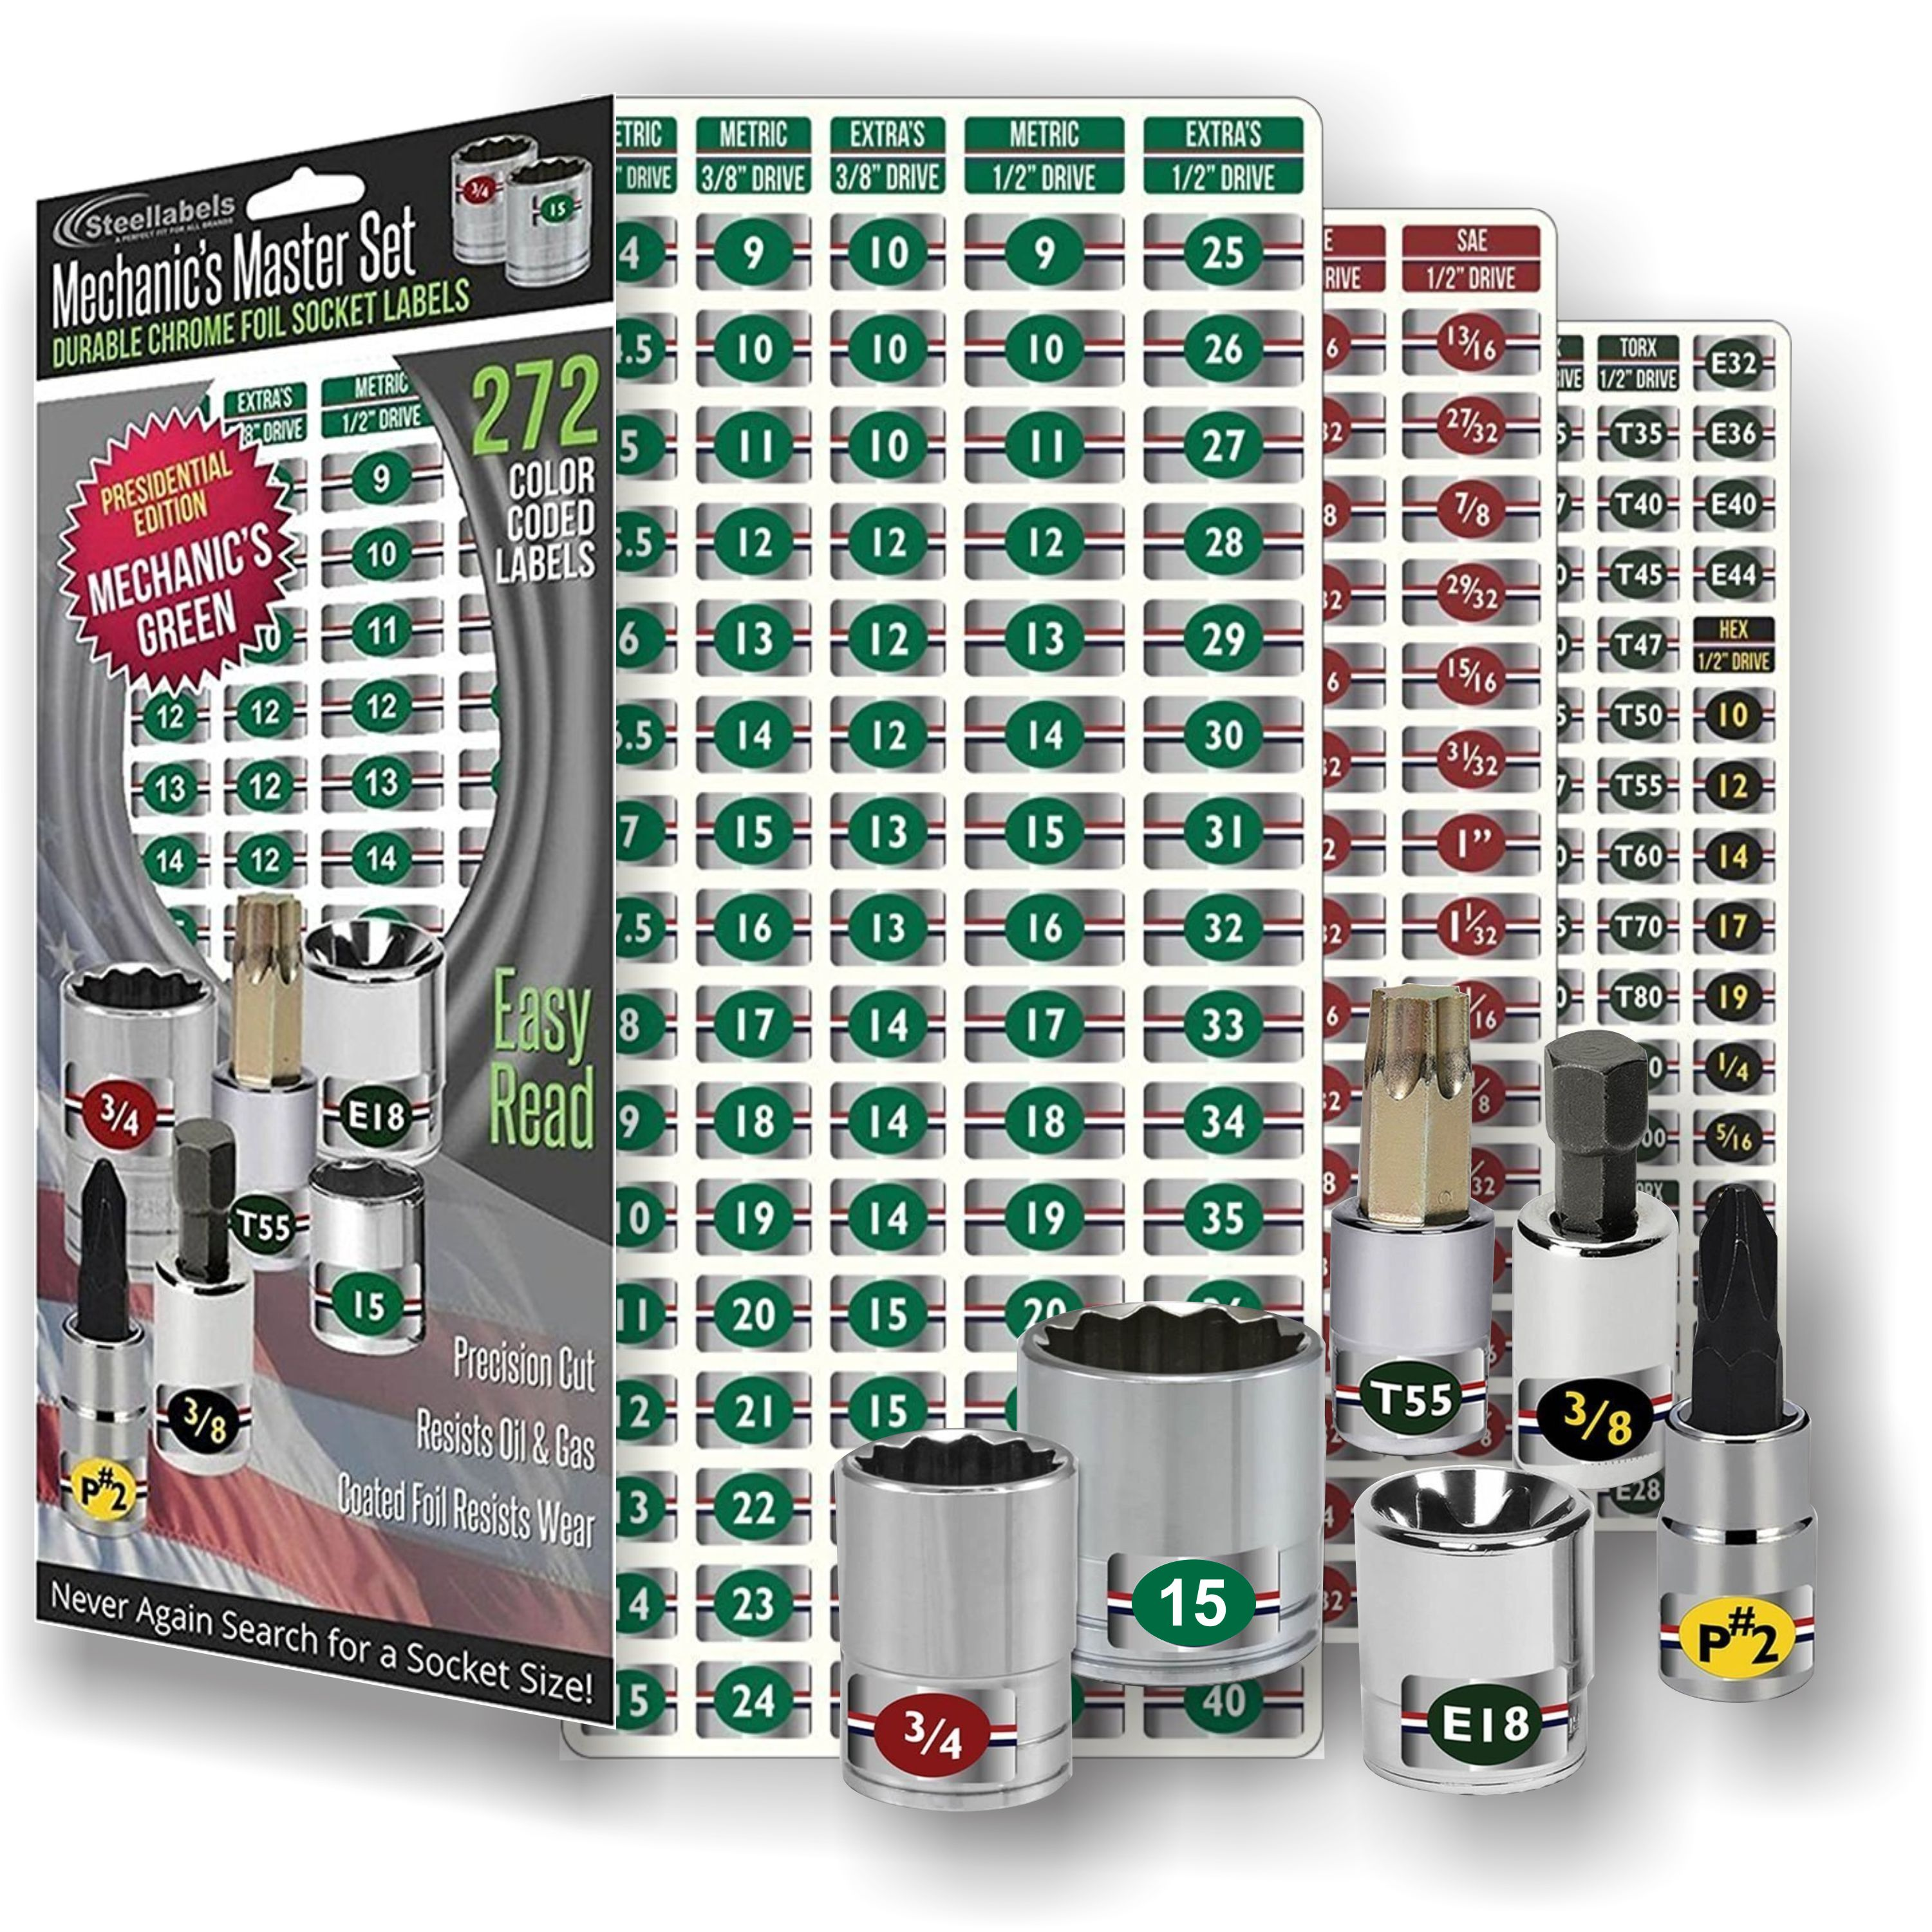 Ultimate Edition Mechanics Master Set - green edition - high quality chrome foil socket labels for Metric - Torx - SAE sockets, fits Craftsman, Snap On & Mac tools